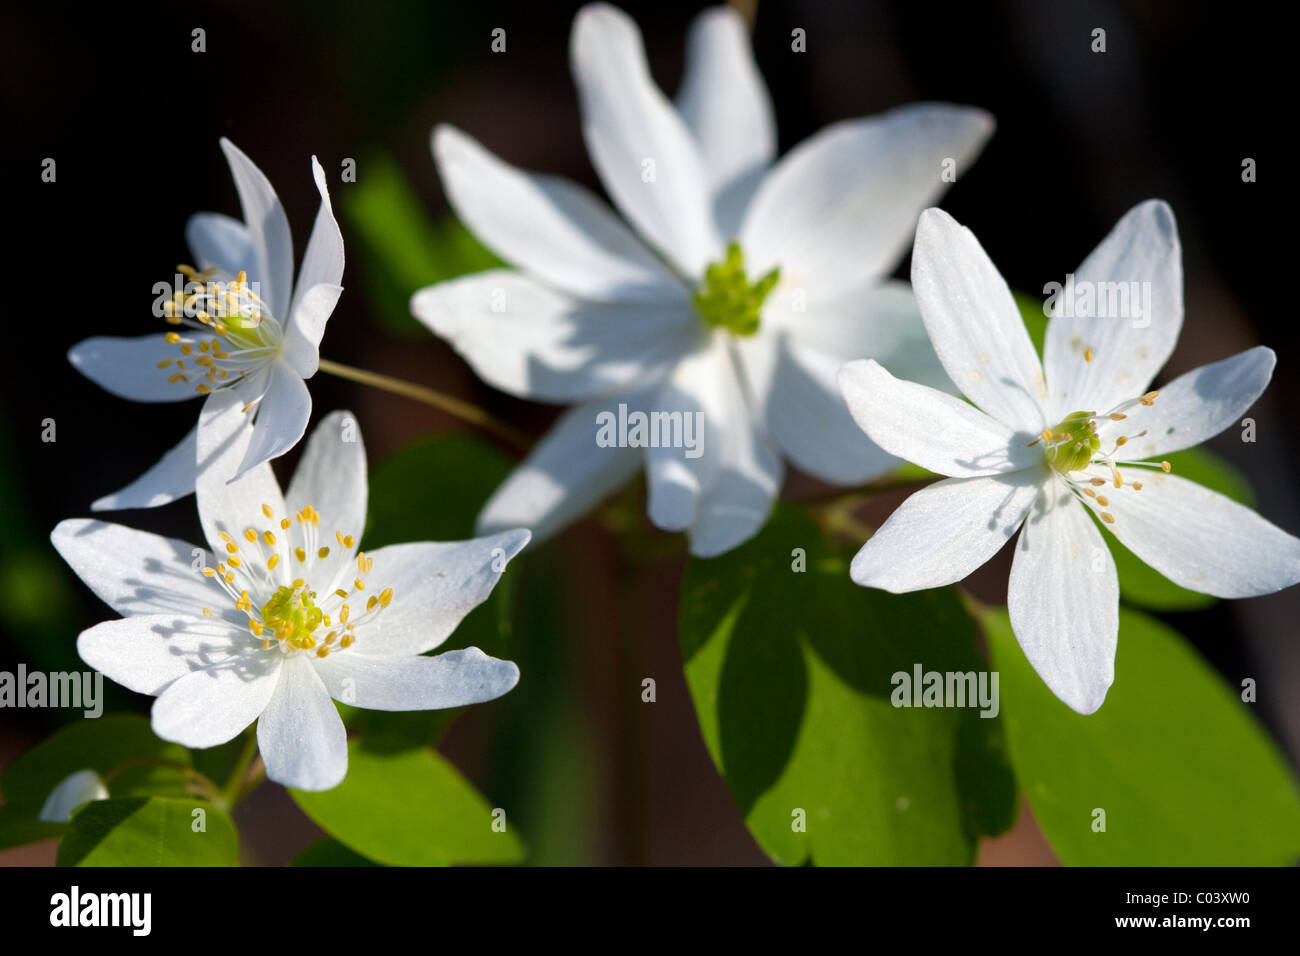 Rue Anemone, Thalictrum thalictroides, Buttercup Family Stock Photo